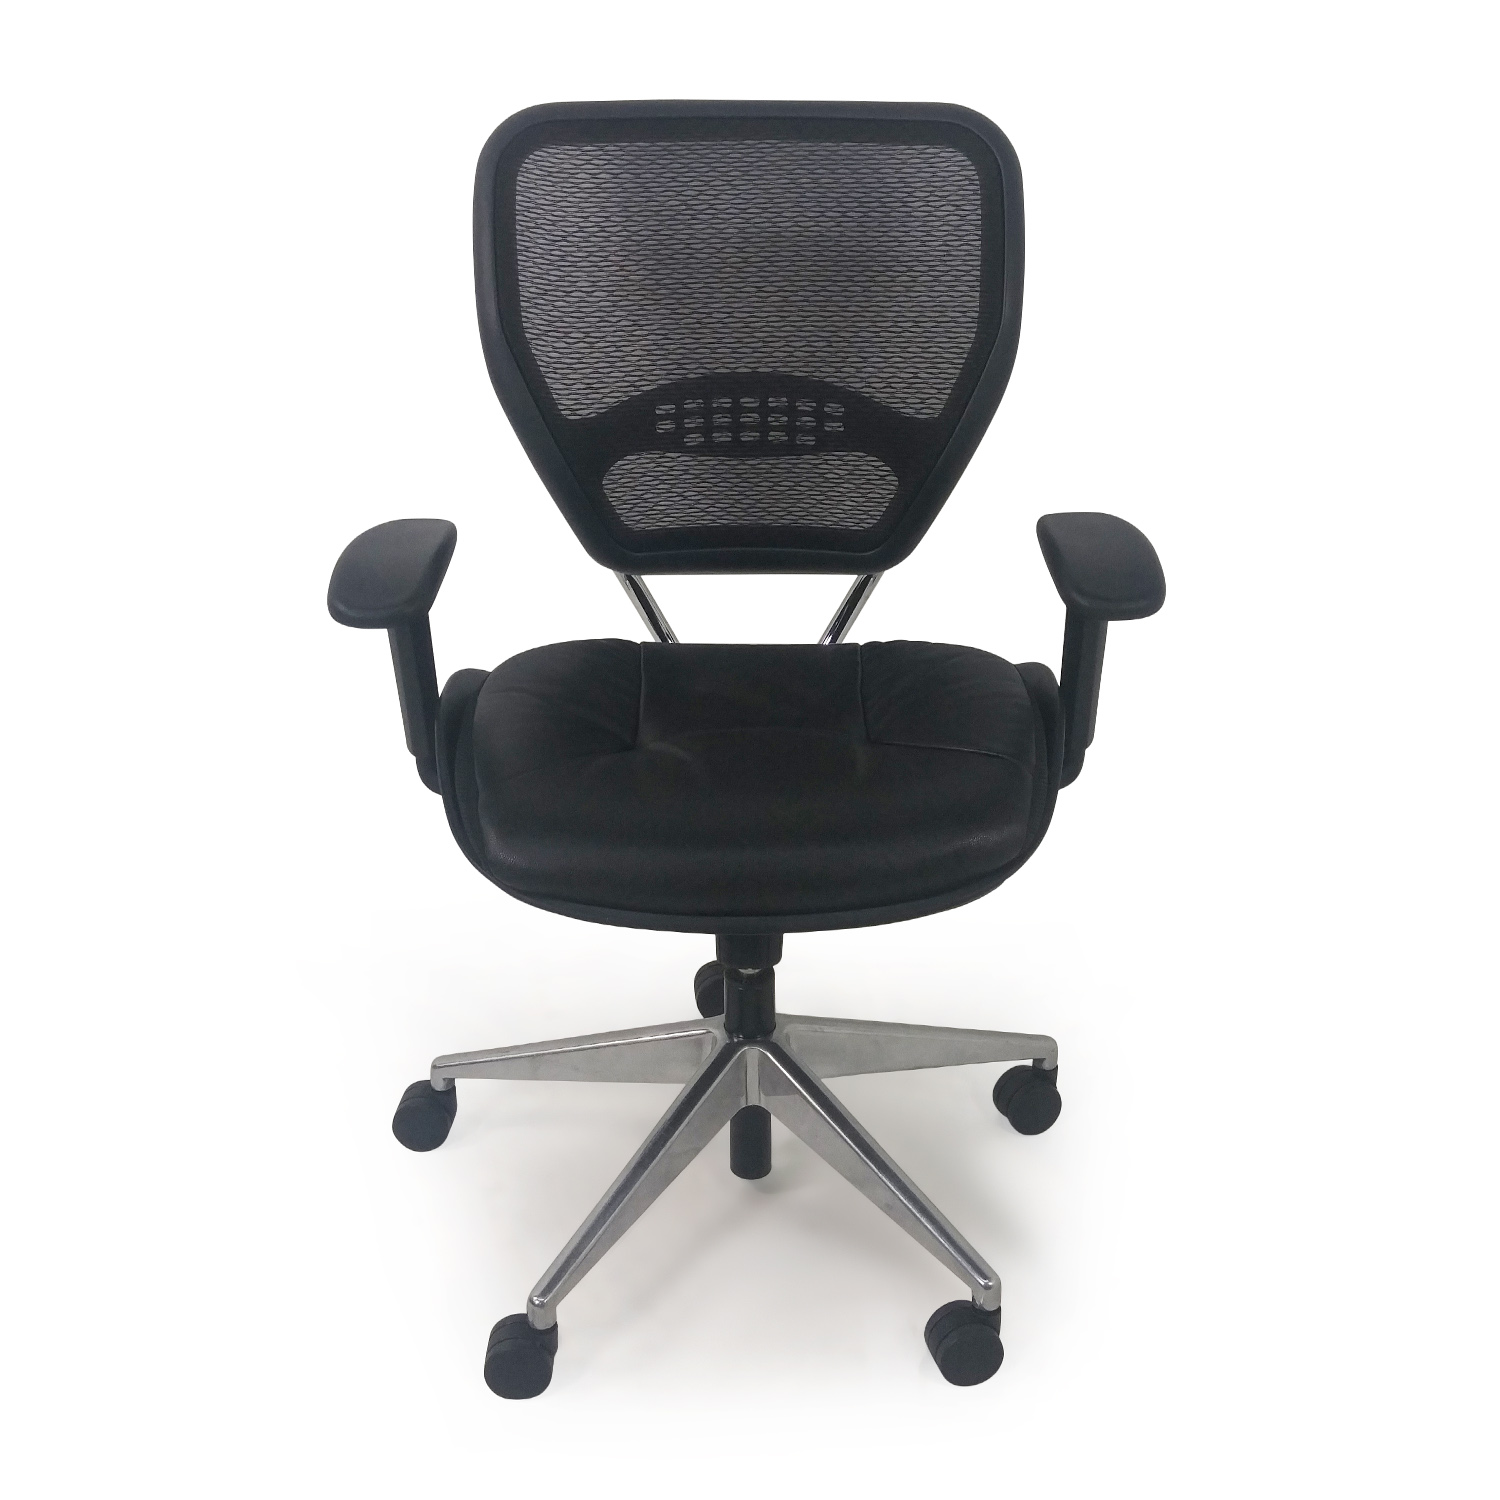 46% OFF Henry Miller Henry Miller Aeron Miller Black Desk Chair